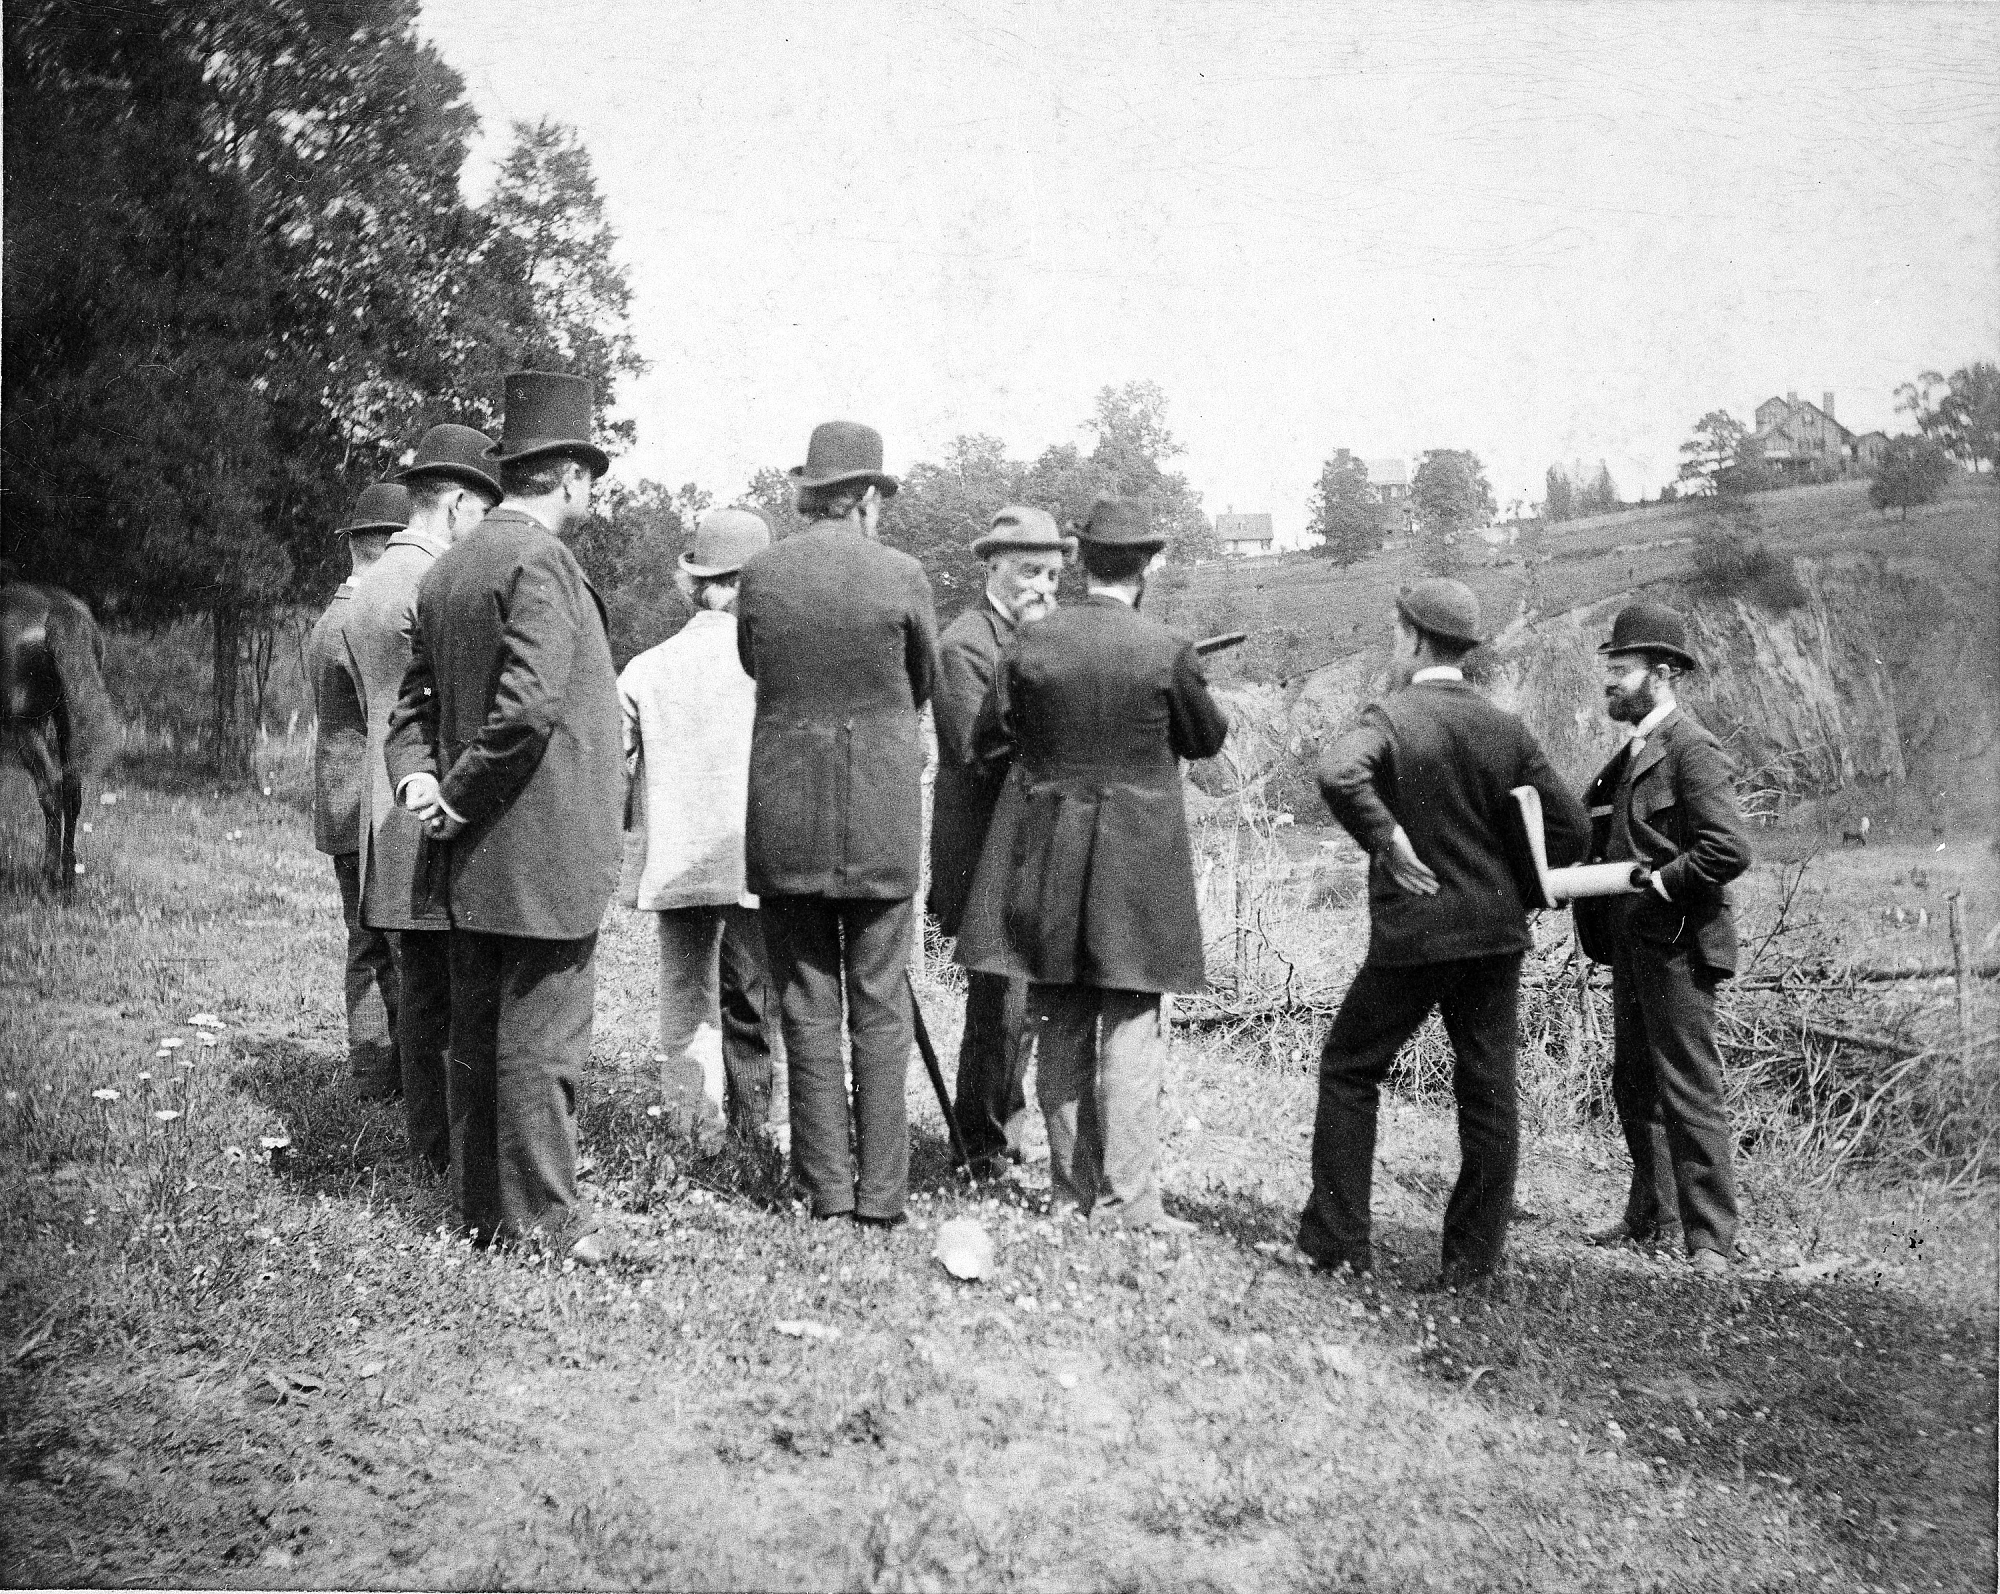 Secretary Samuel P. Langley with others survey the grounds of the newly established National Zoological Park. Smithsonian Institution Archives, Record Unit 95, Box 35, Folder 3.